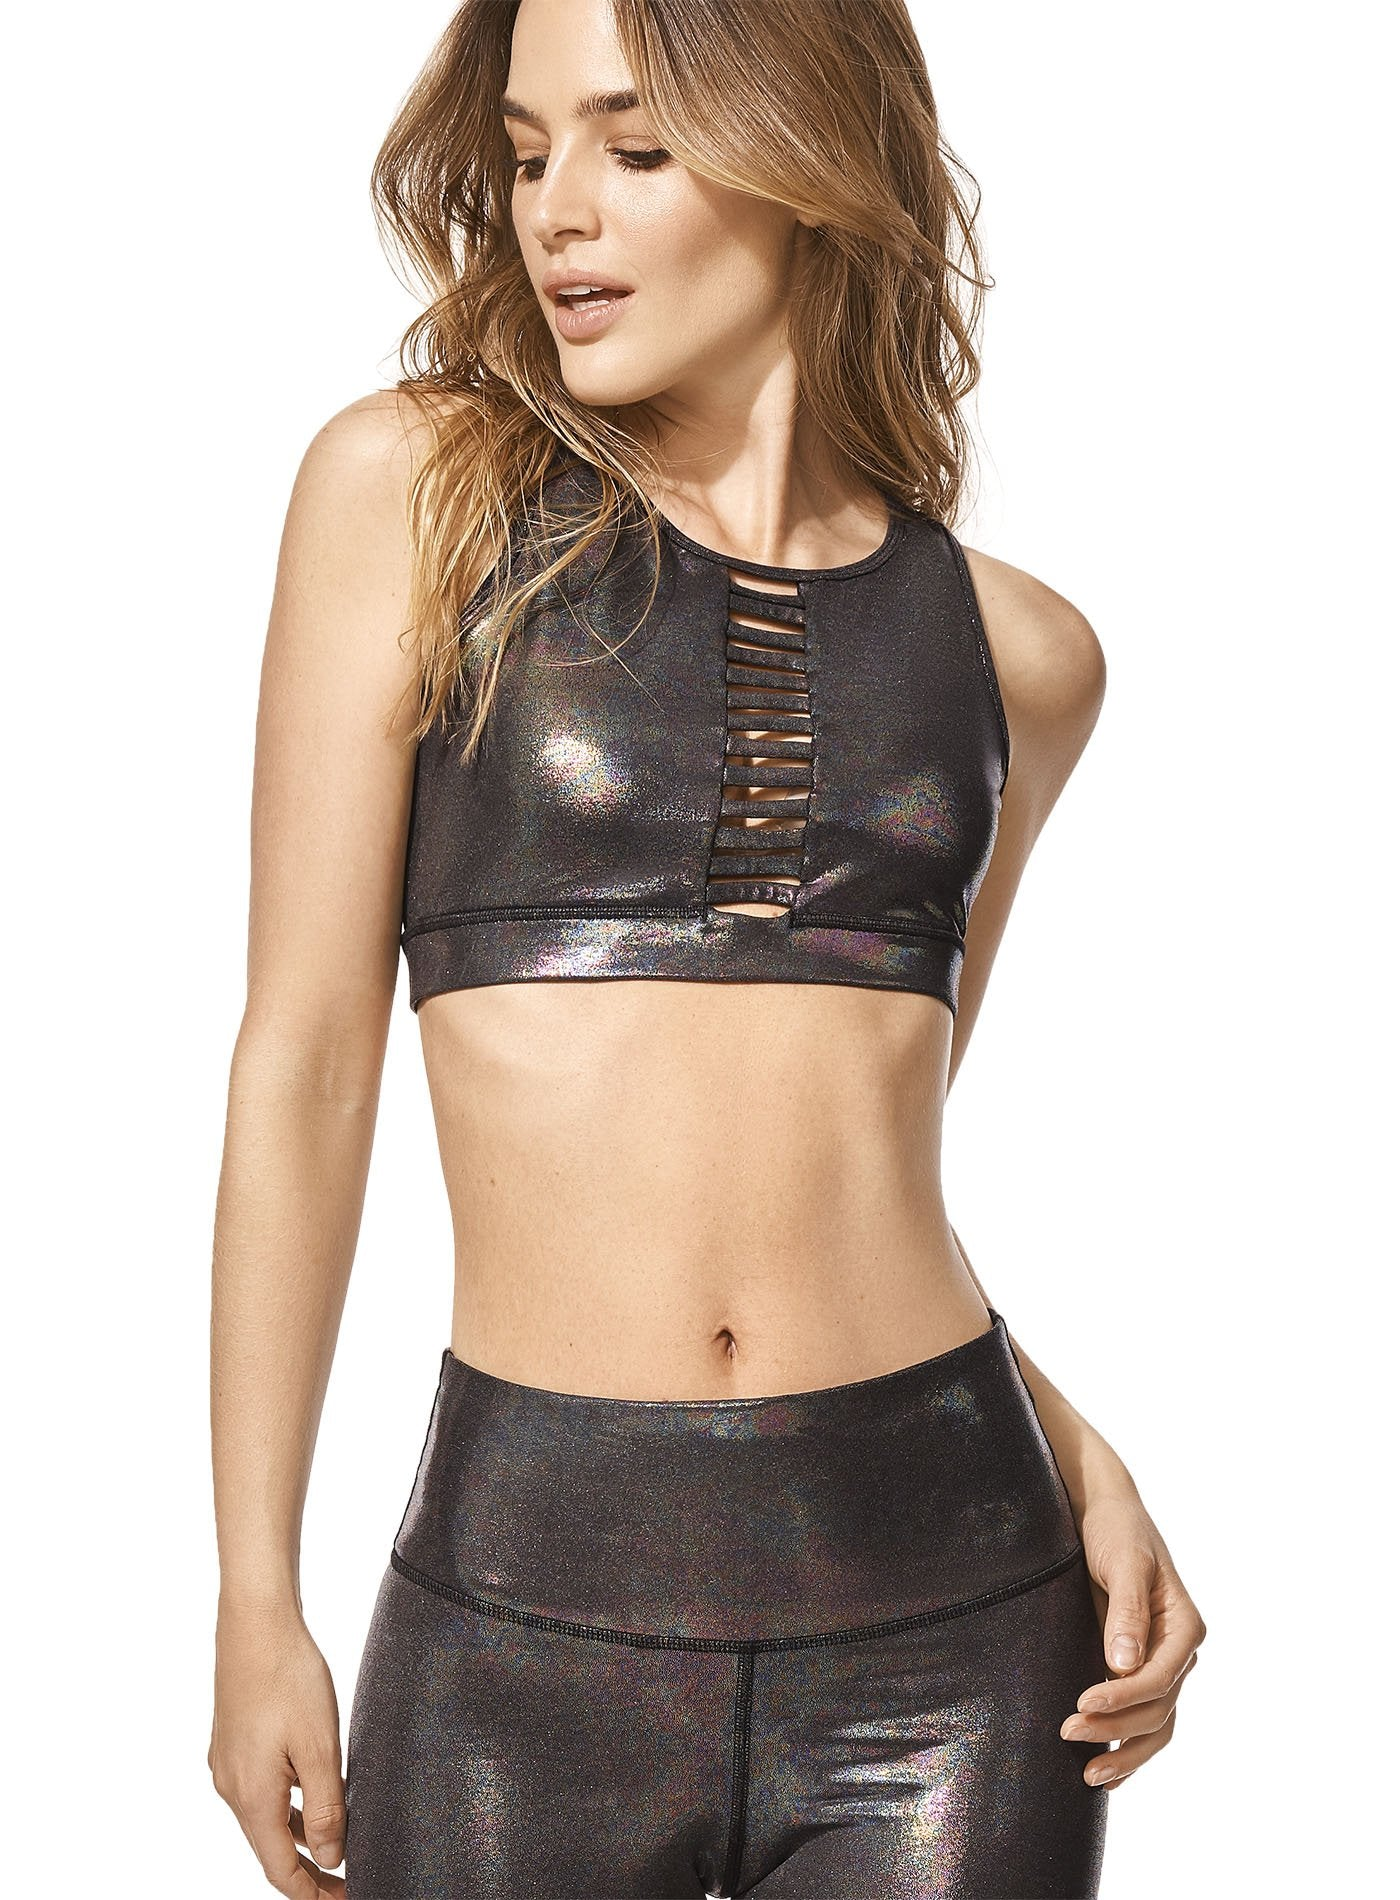 Top Deportivo Mujer Babalú Talla S-M | Ref 70673